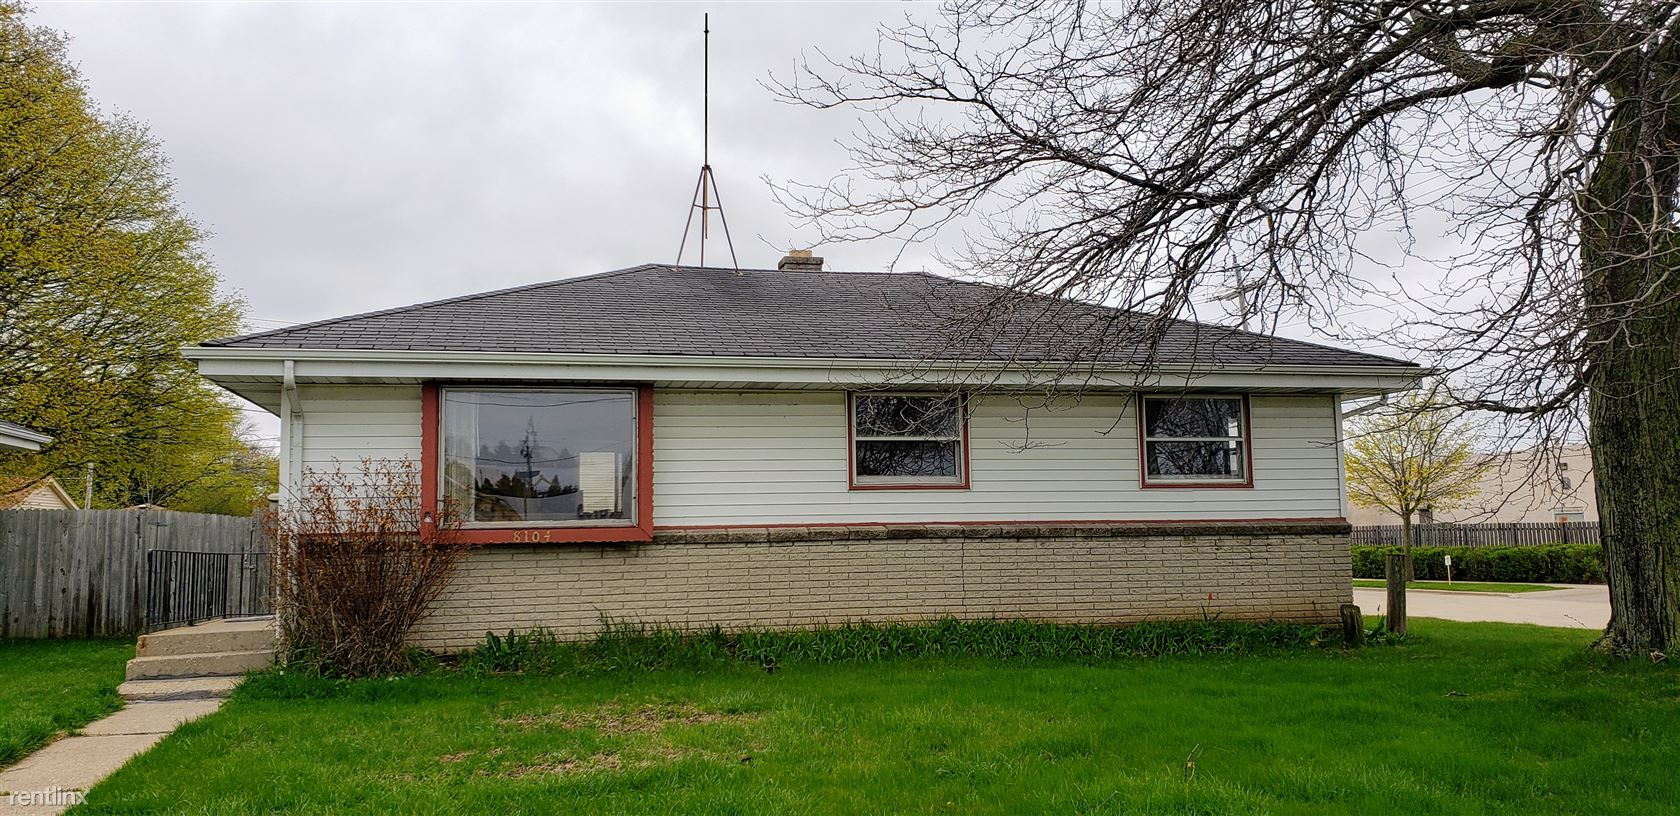 Apartment For Rent At 8104 22nd Ave Kenosha Wi 53143 Rentler